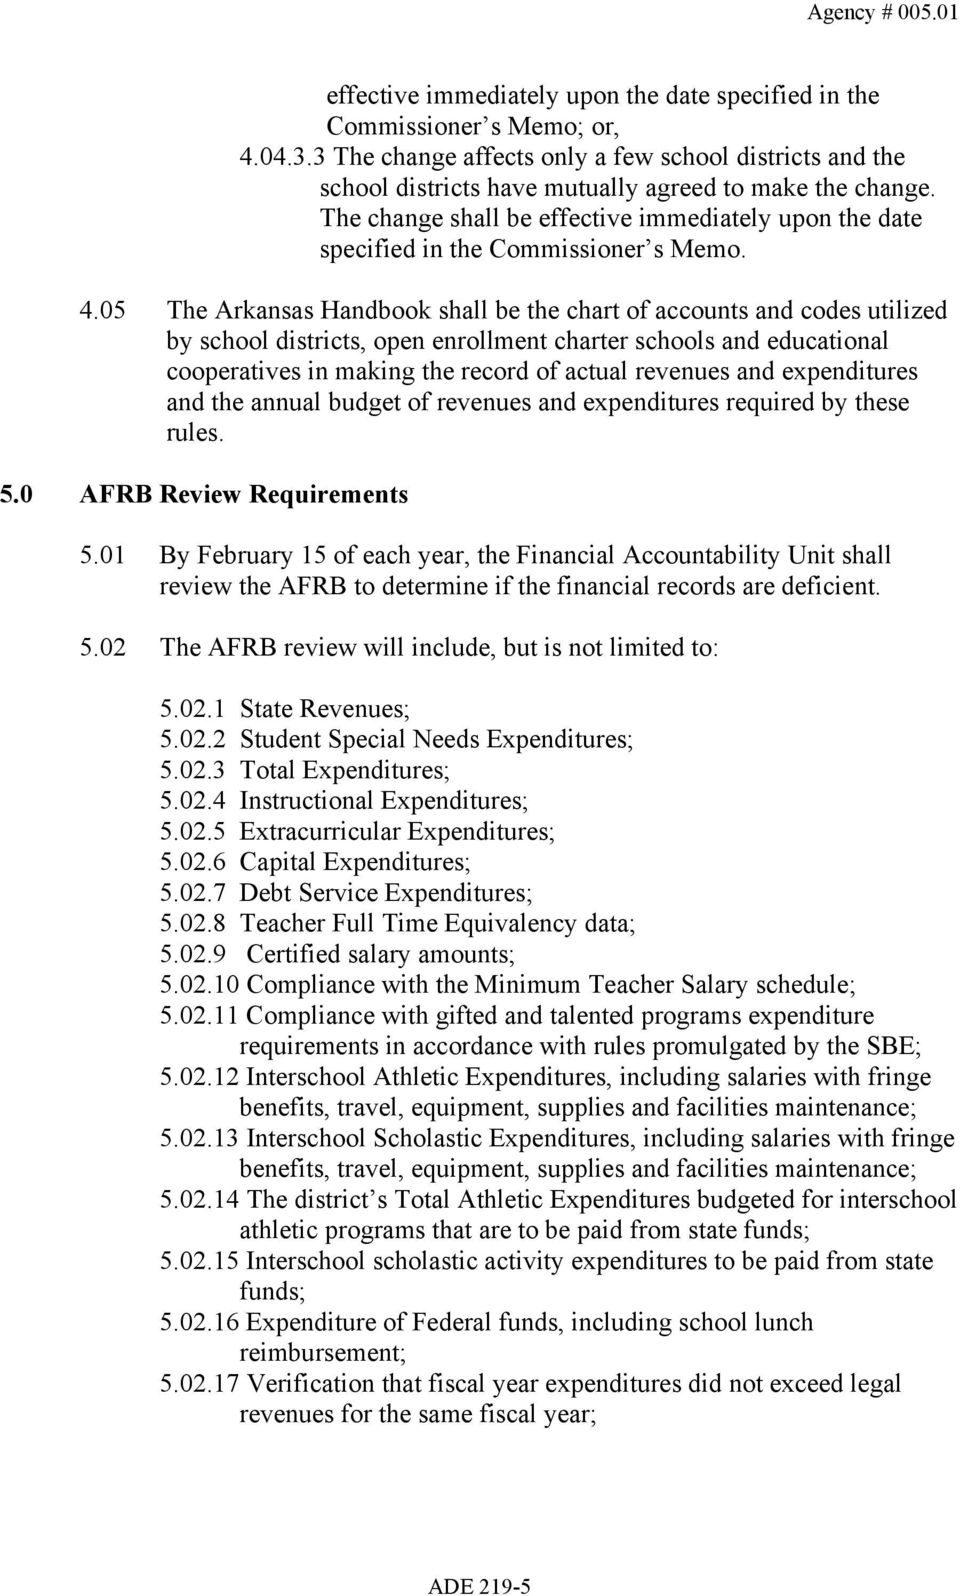 05 The Arkansas Handbook shall be the chart of accounts and codes utilized by school districts, open enrollment charter schools and educational cooperatives in making the record of actual revenues